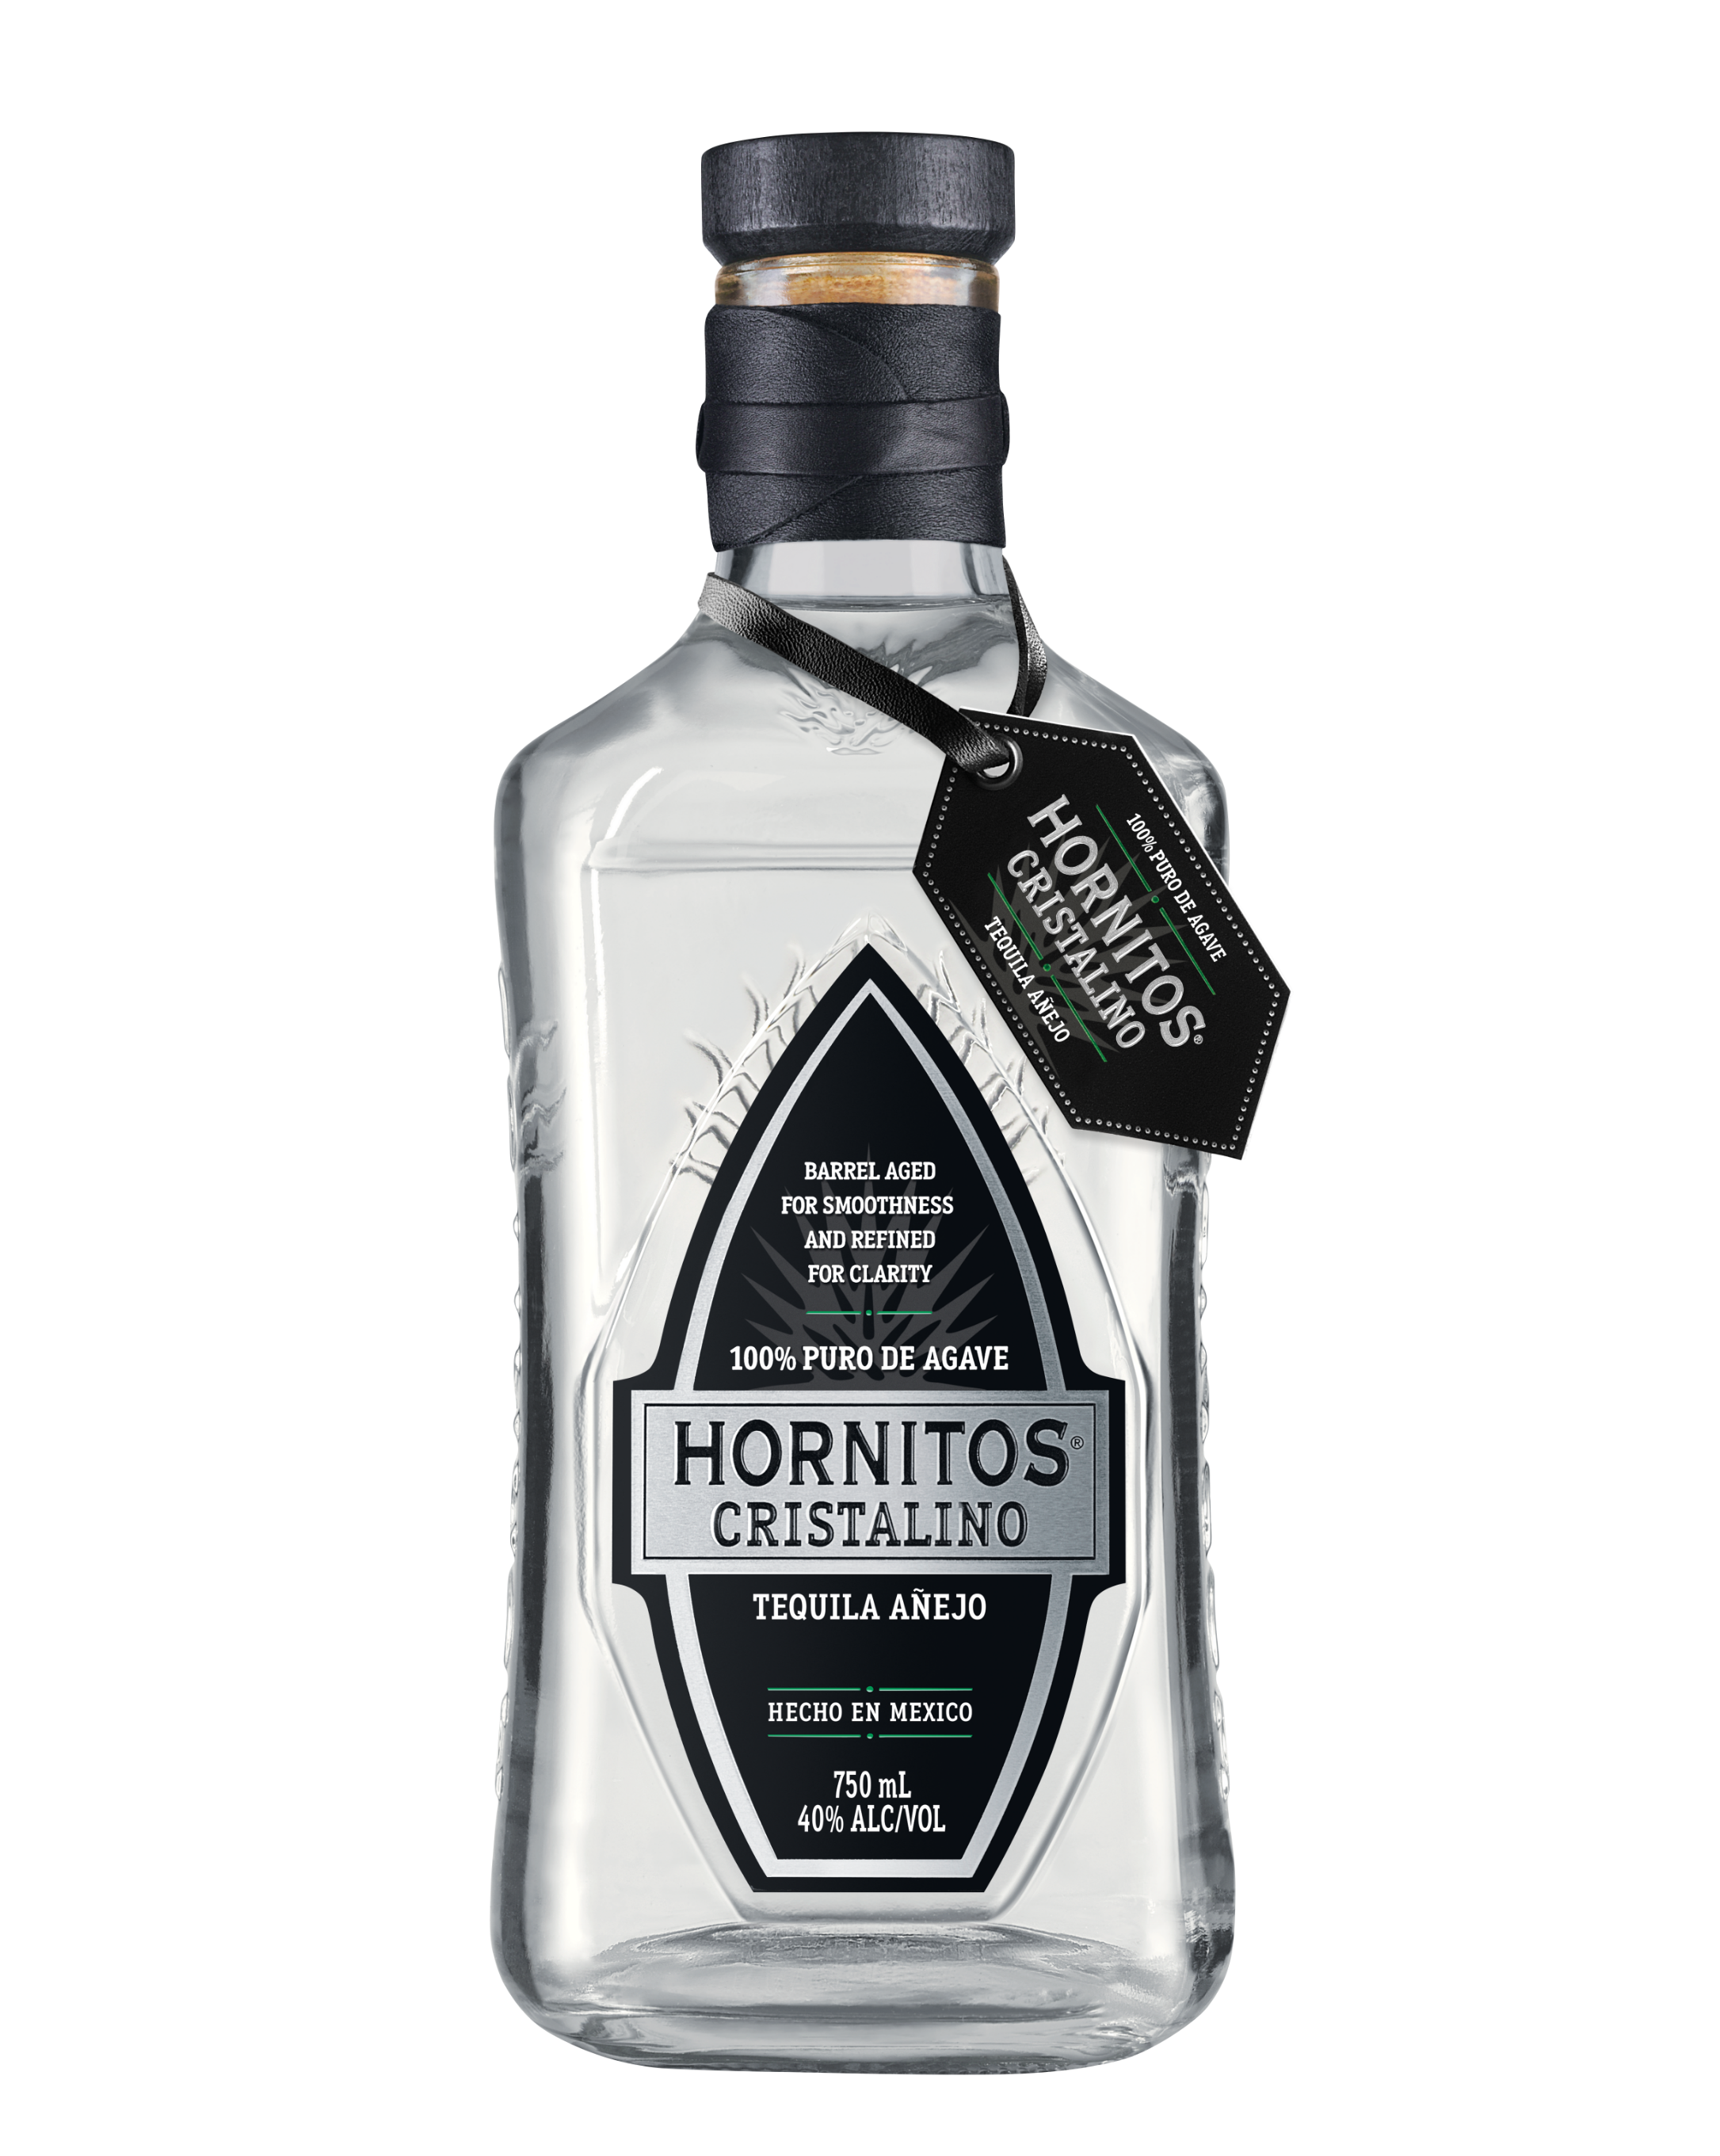 Hornitos Cristalino Tequila Bottle